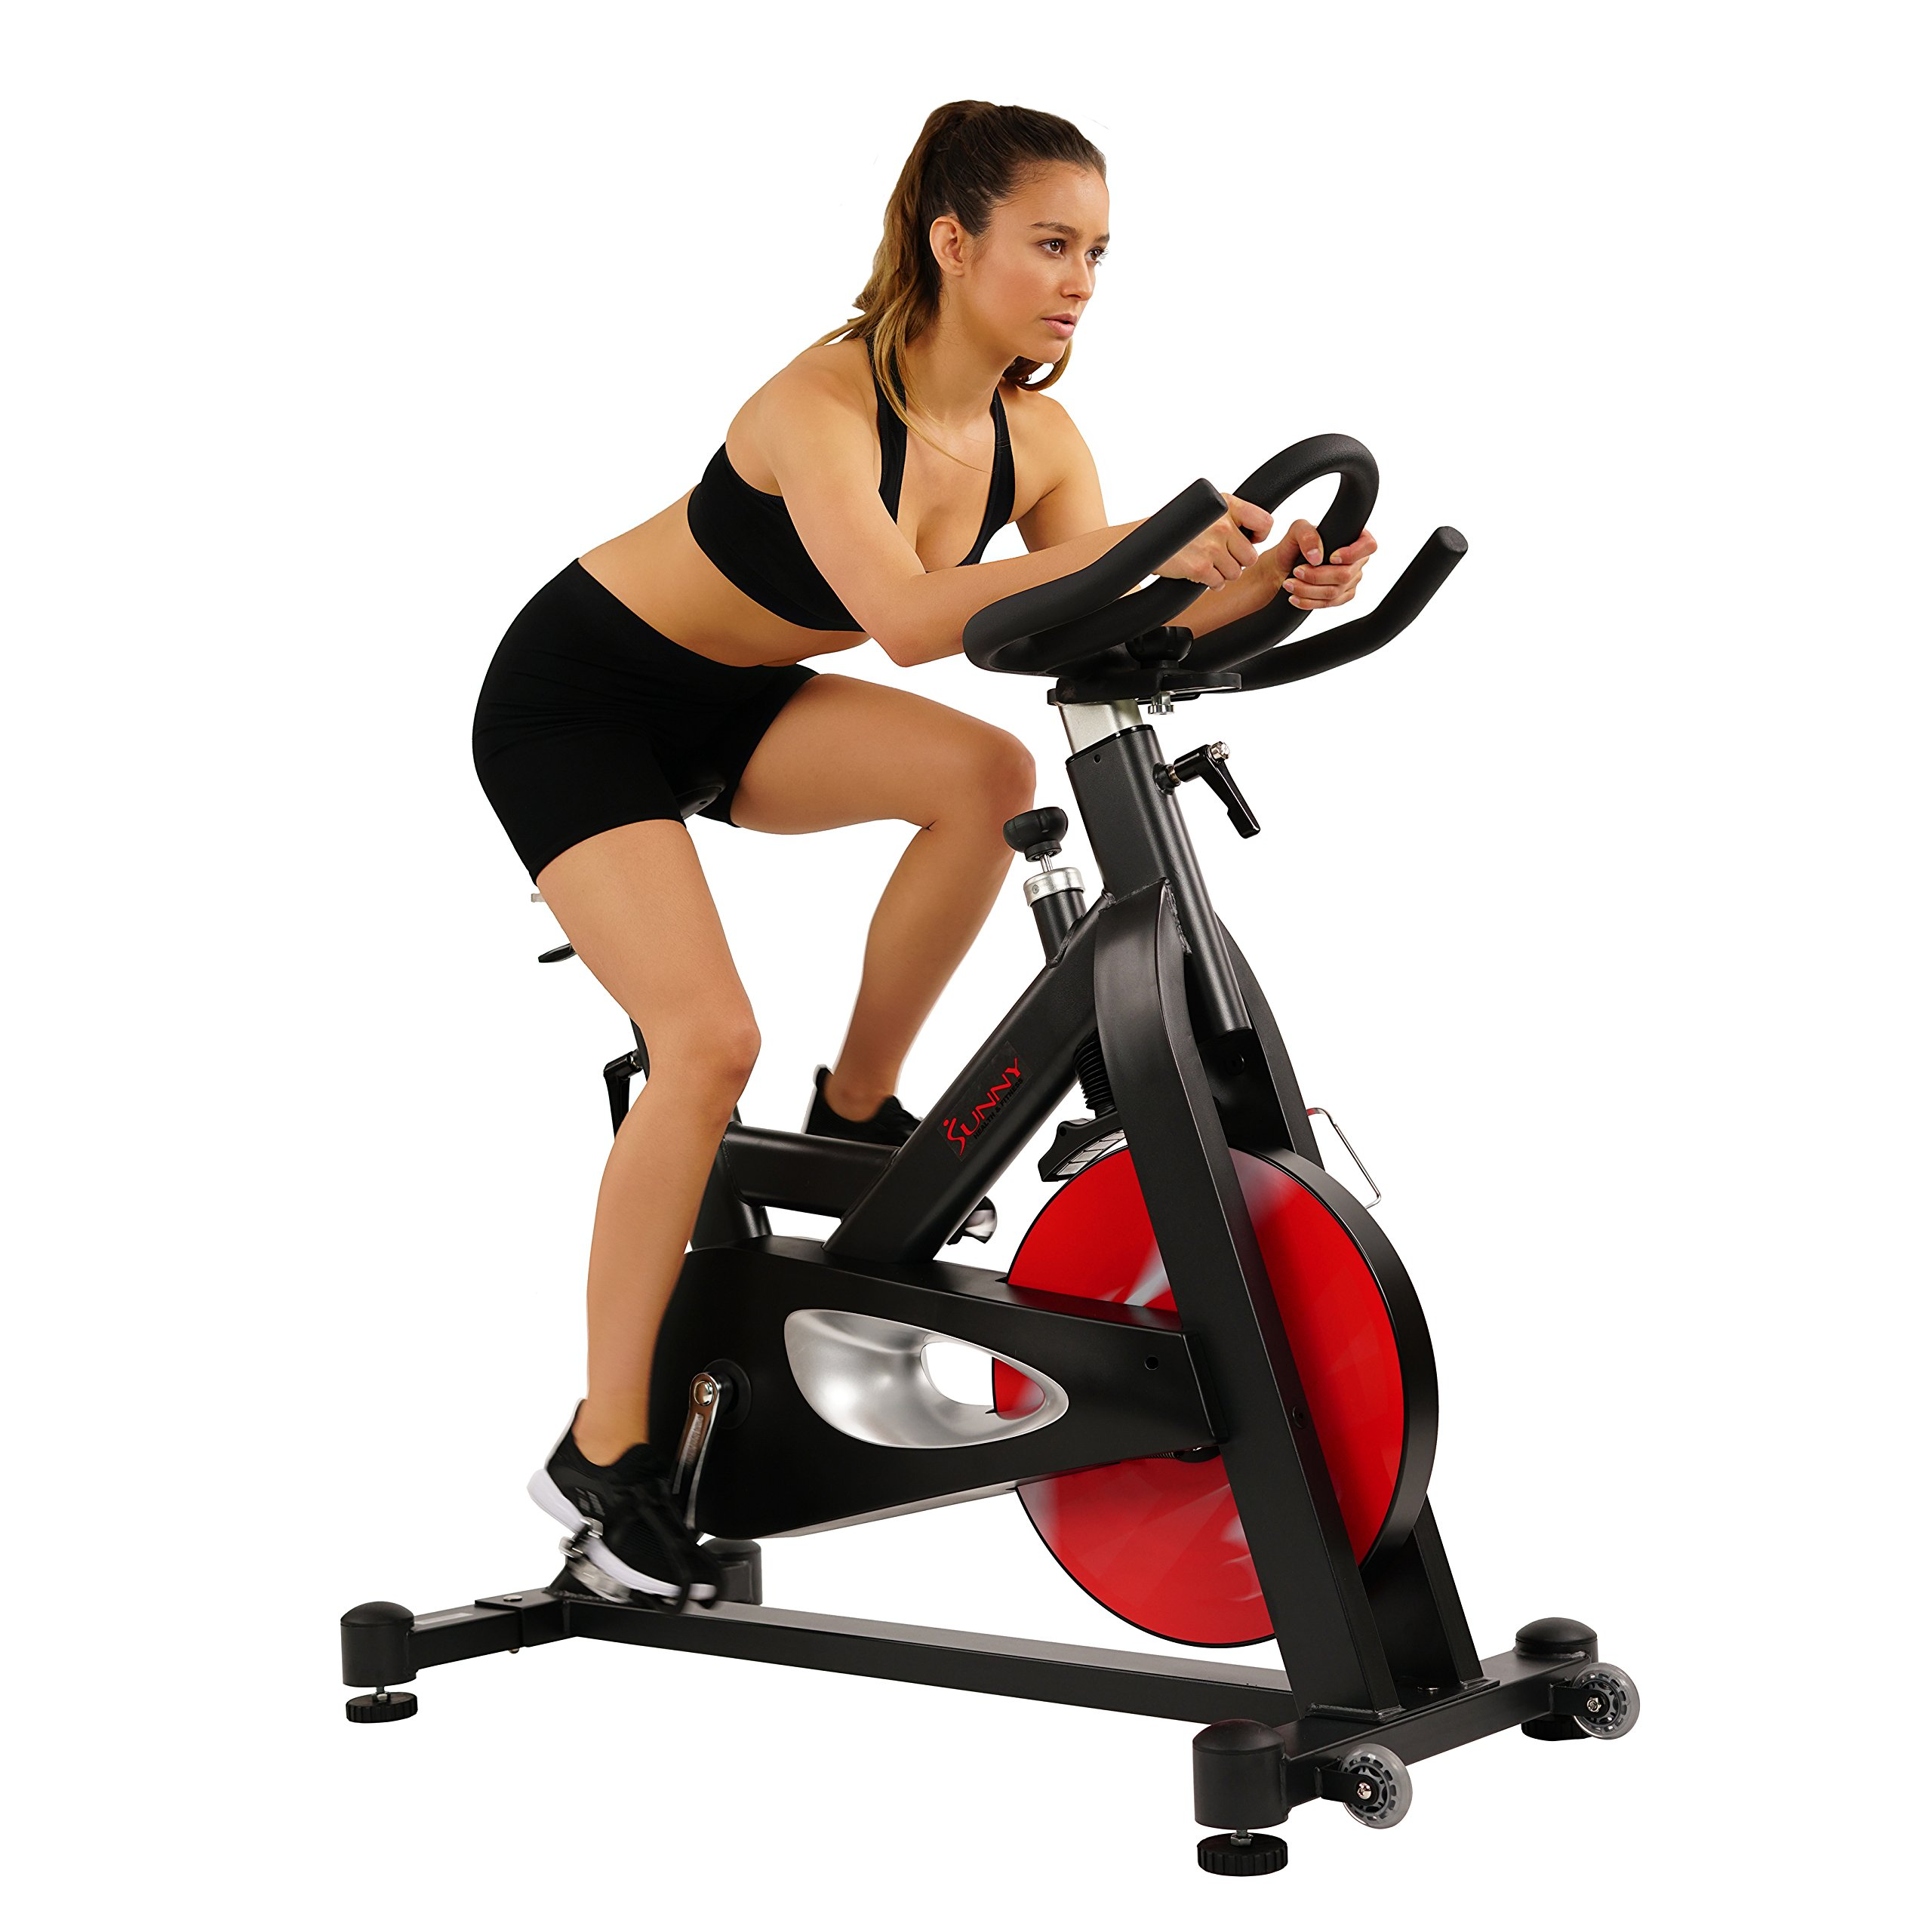 8 Best Magnetic Spin Bike Reviews and Indoor Cycle Comparisons 2019